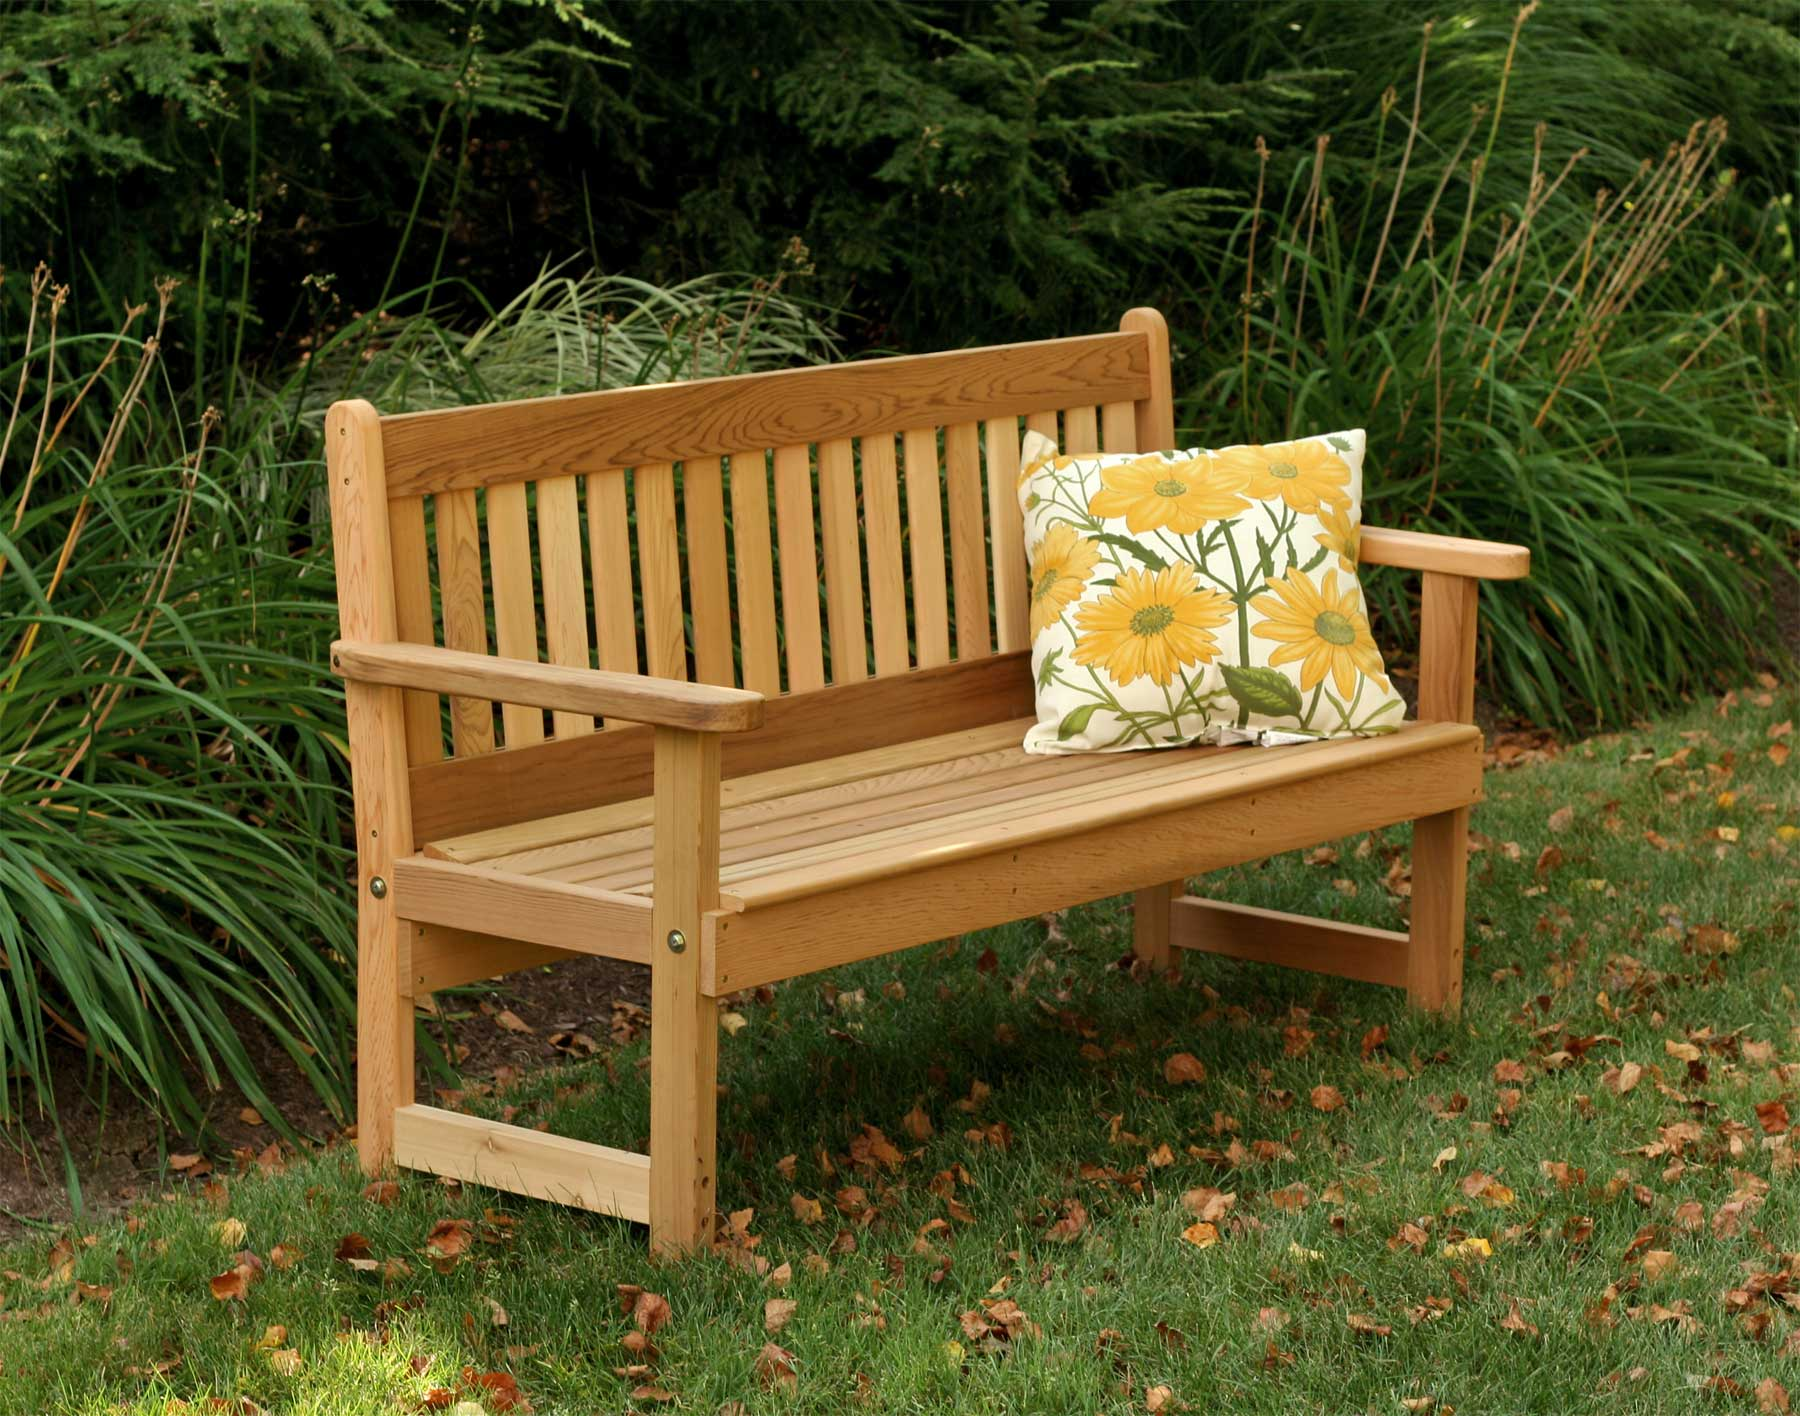 Sensational Red Cedar English Garden Bench Bralicious Painted Fabric Chair Ideas Braliciousco